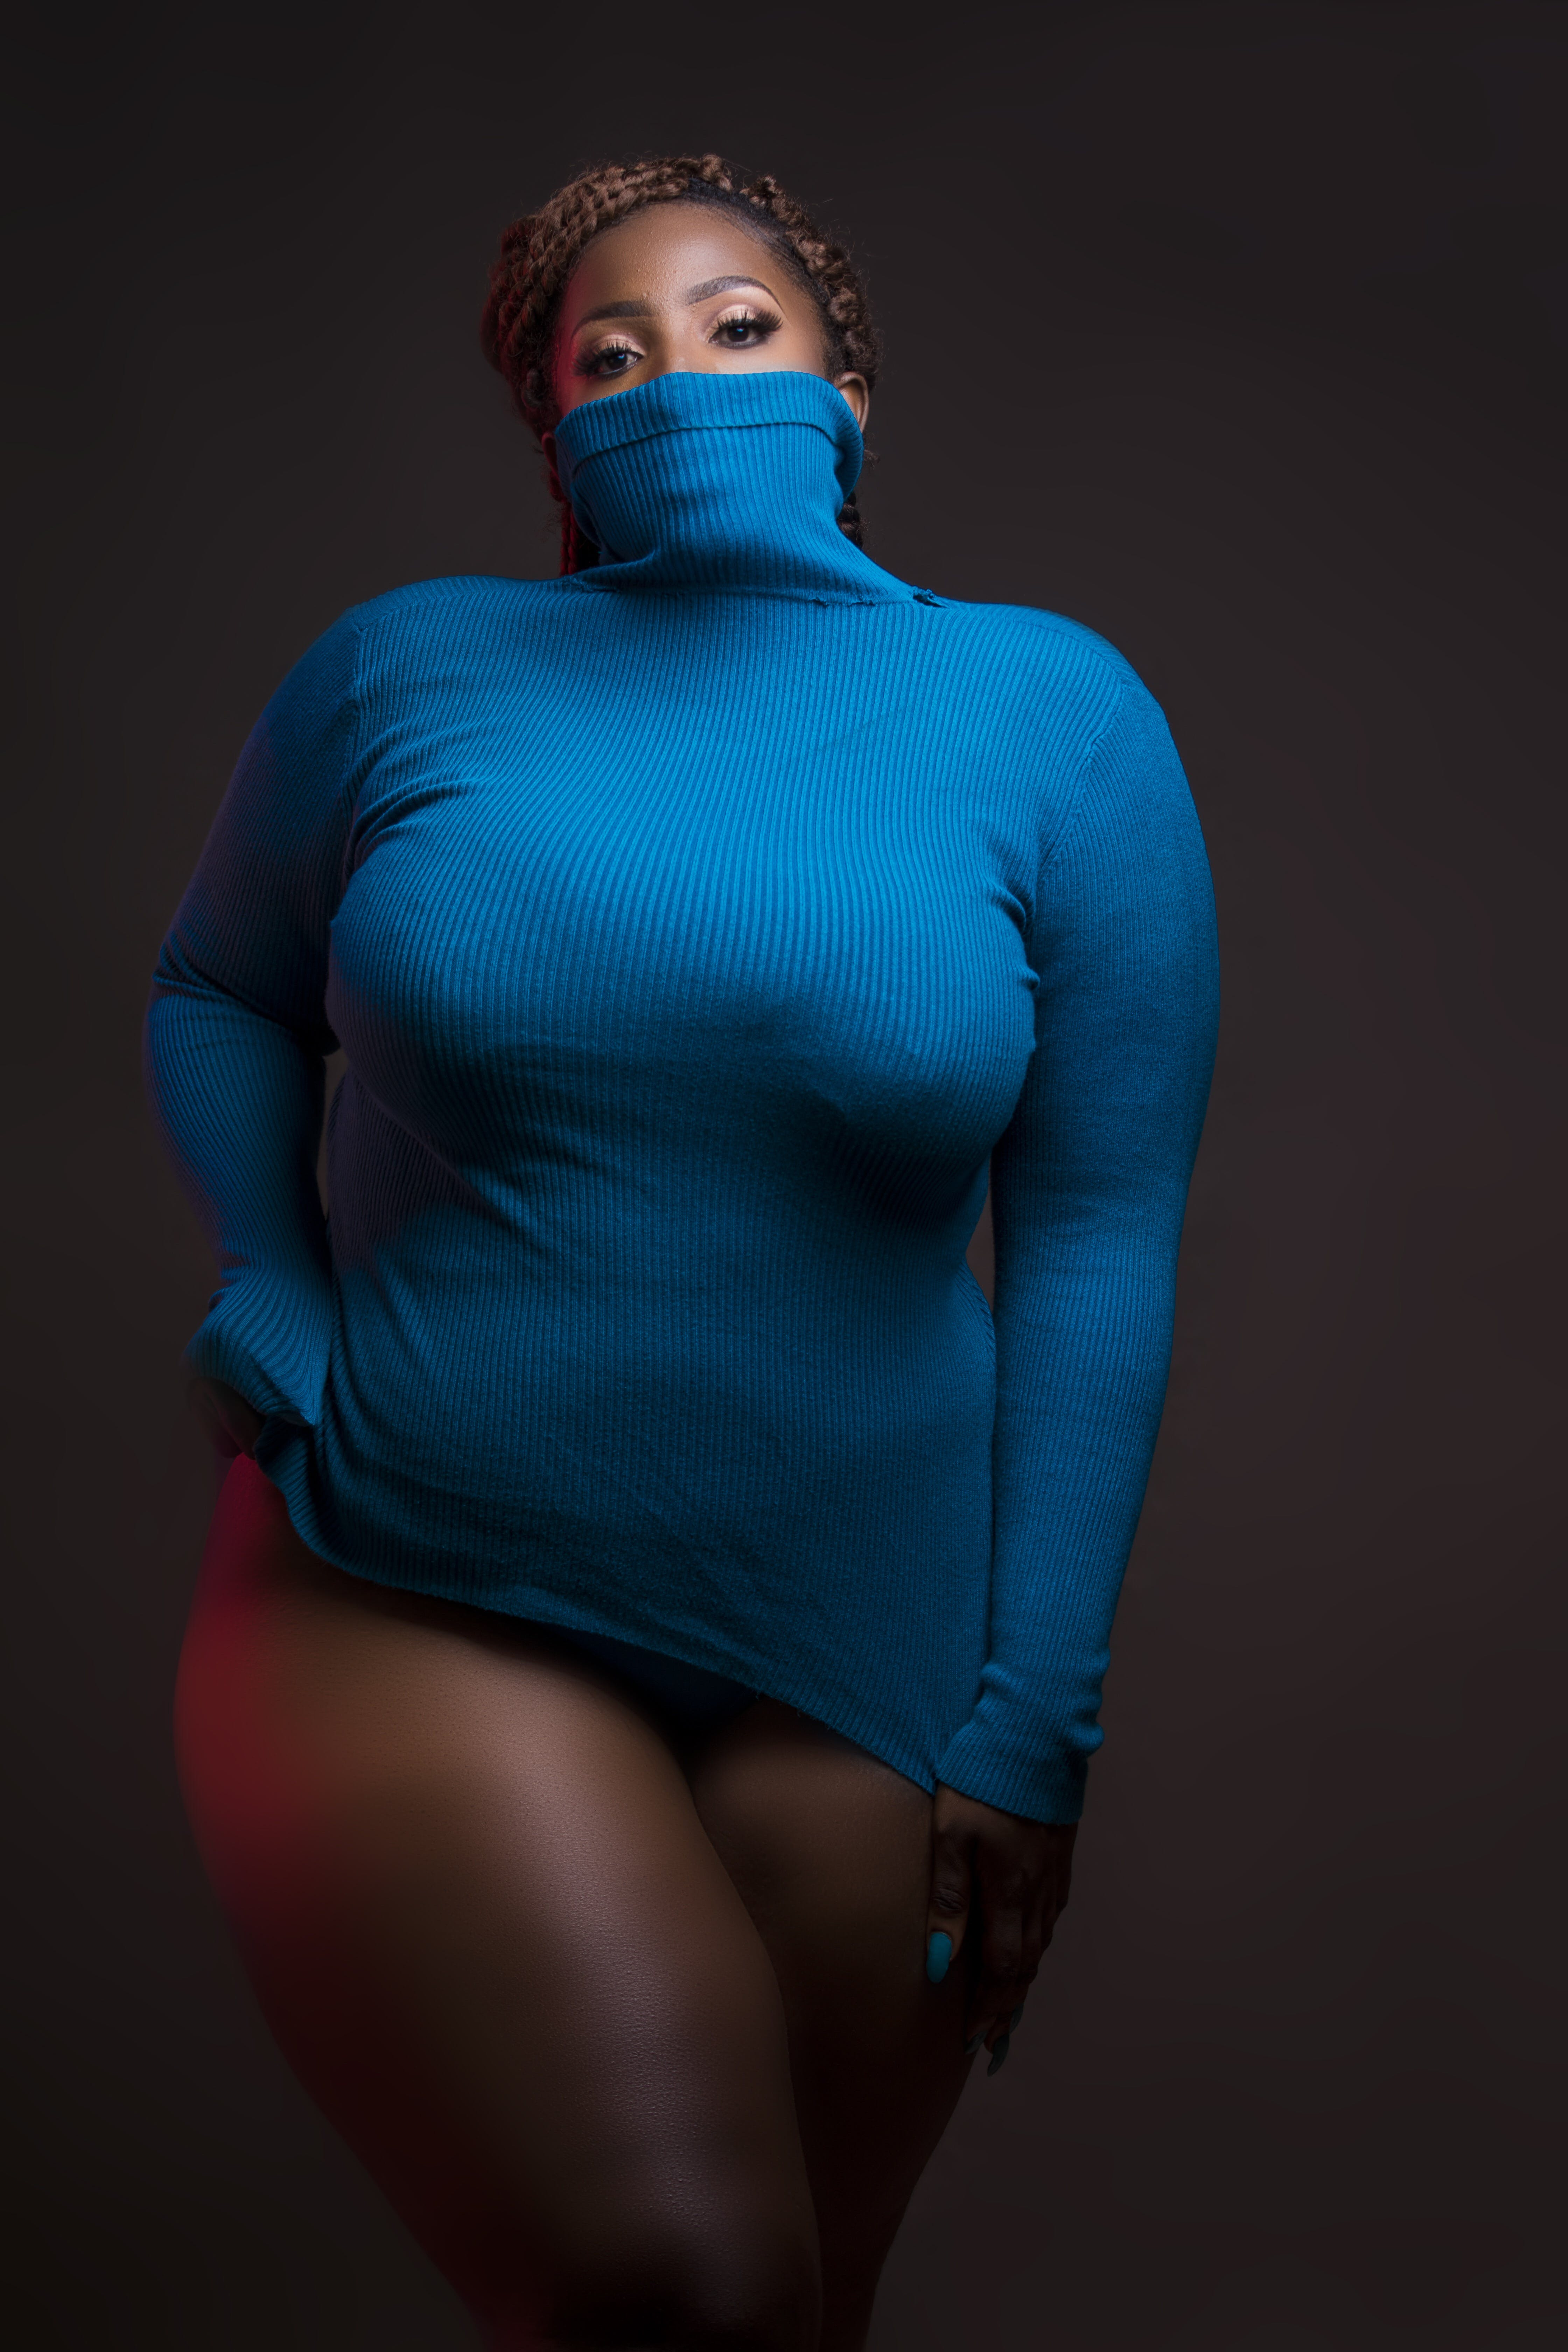 Woman in Blue Turtleneck Sweatshirt